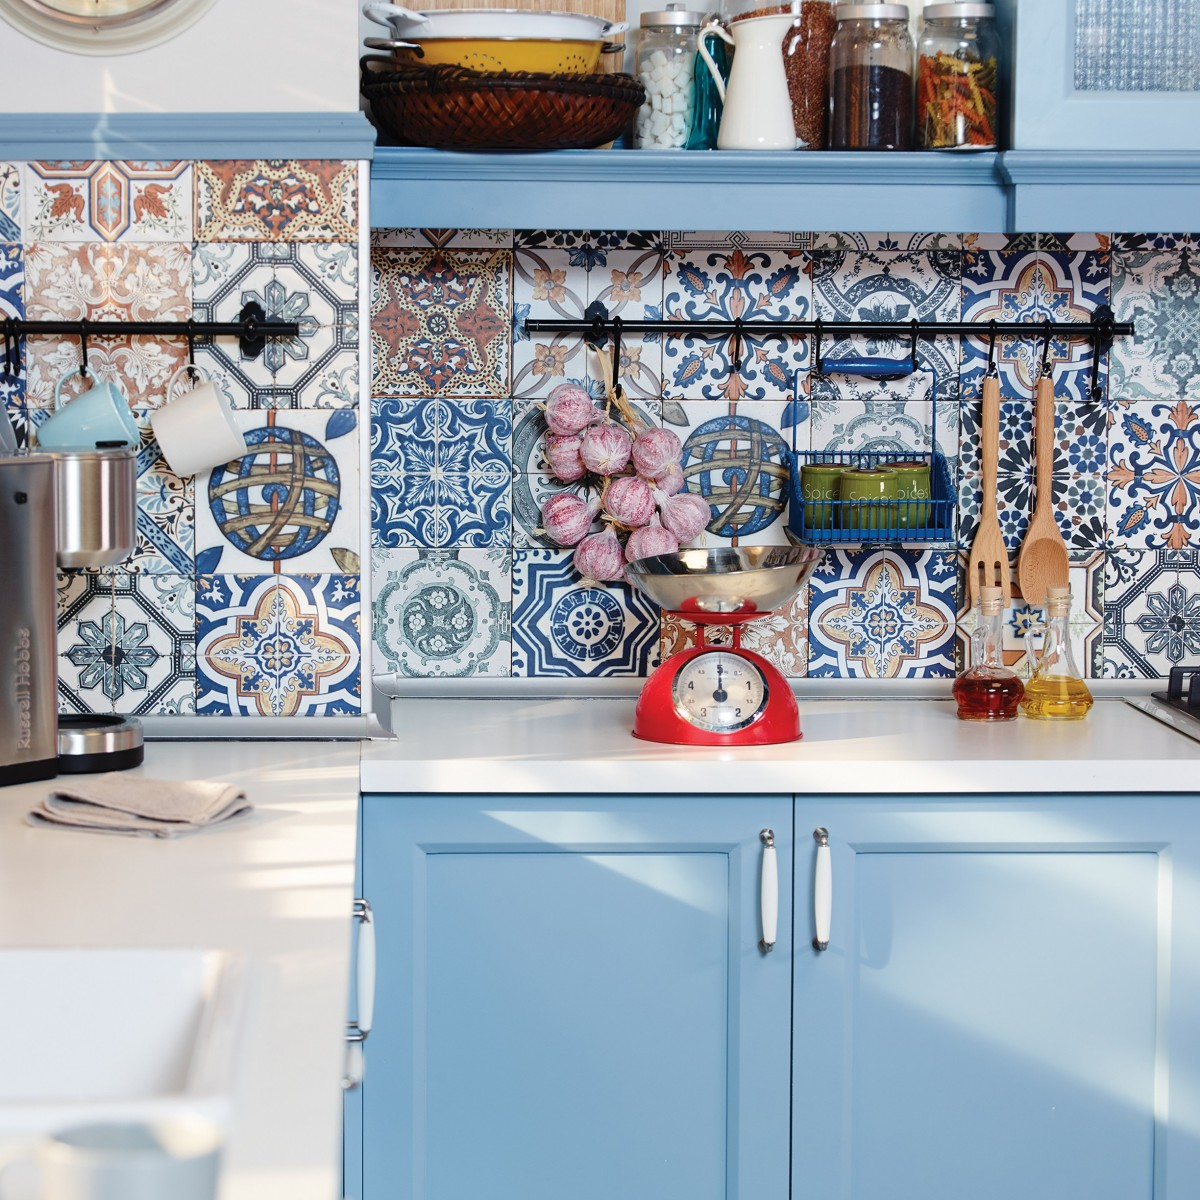 Victoria Patterned Wall Tile